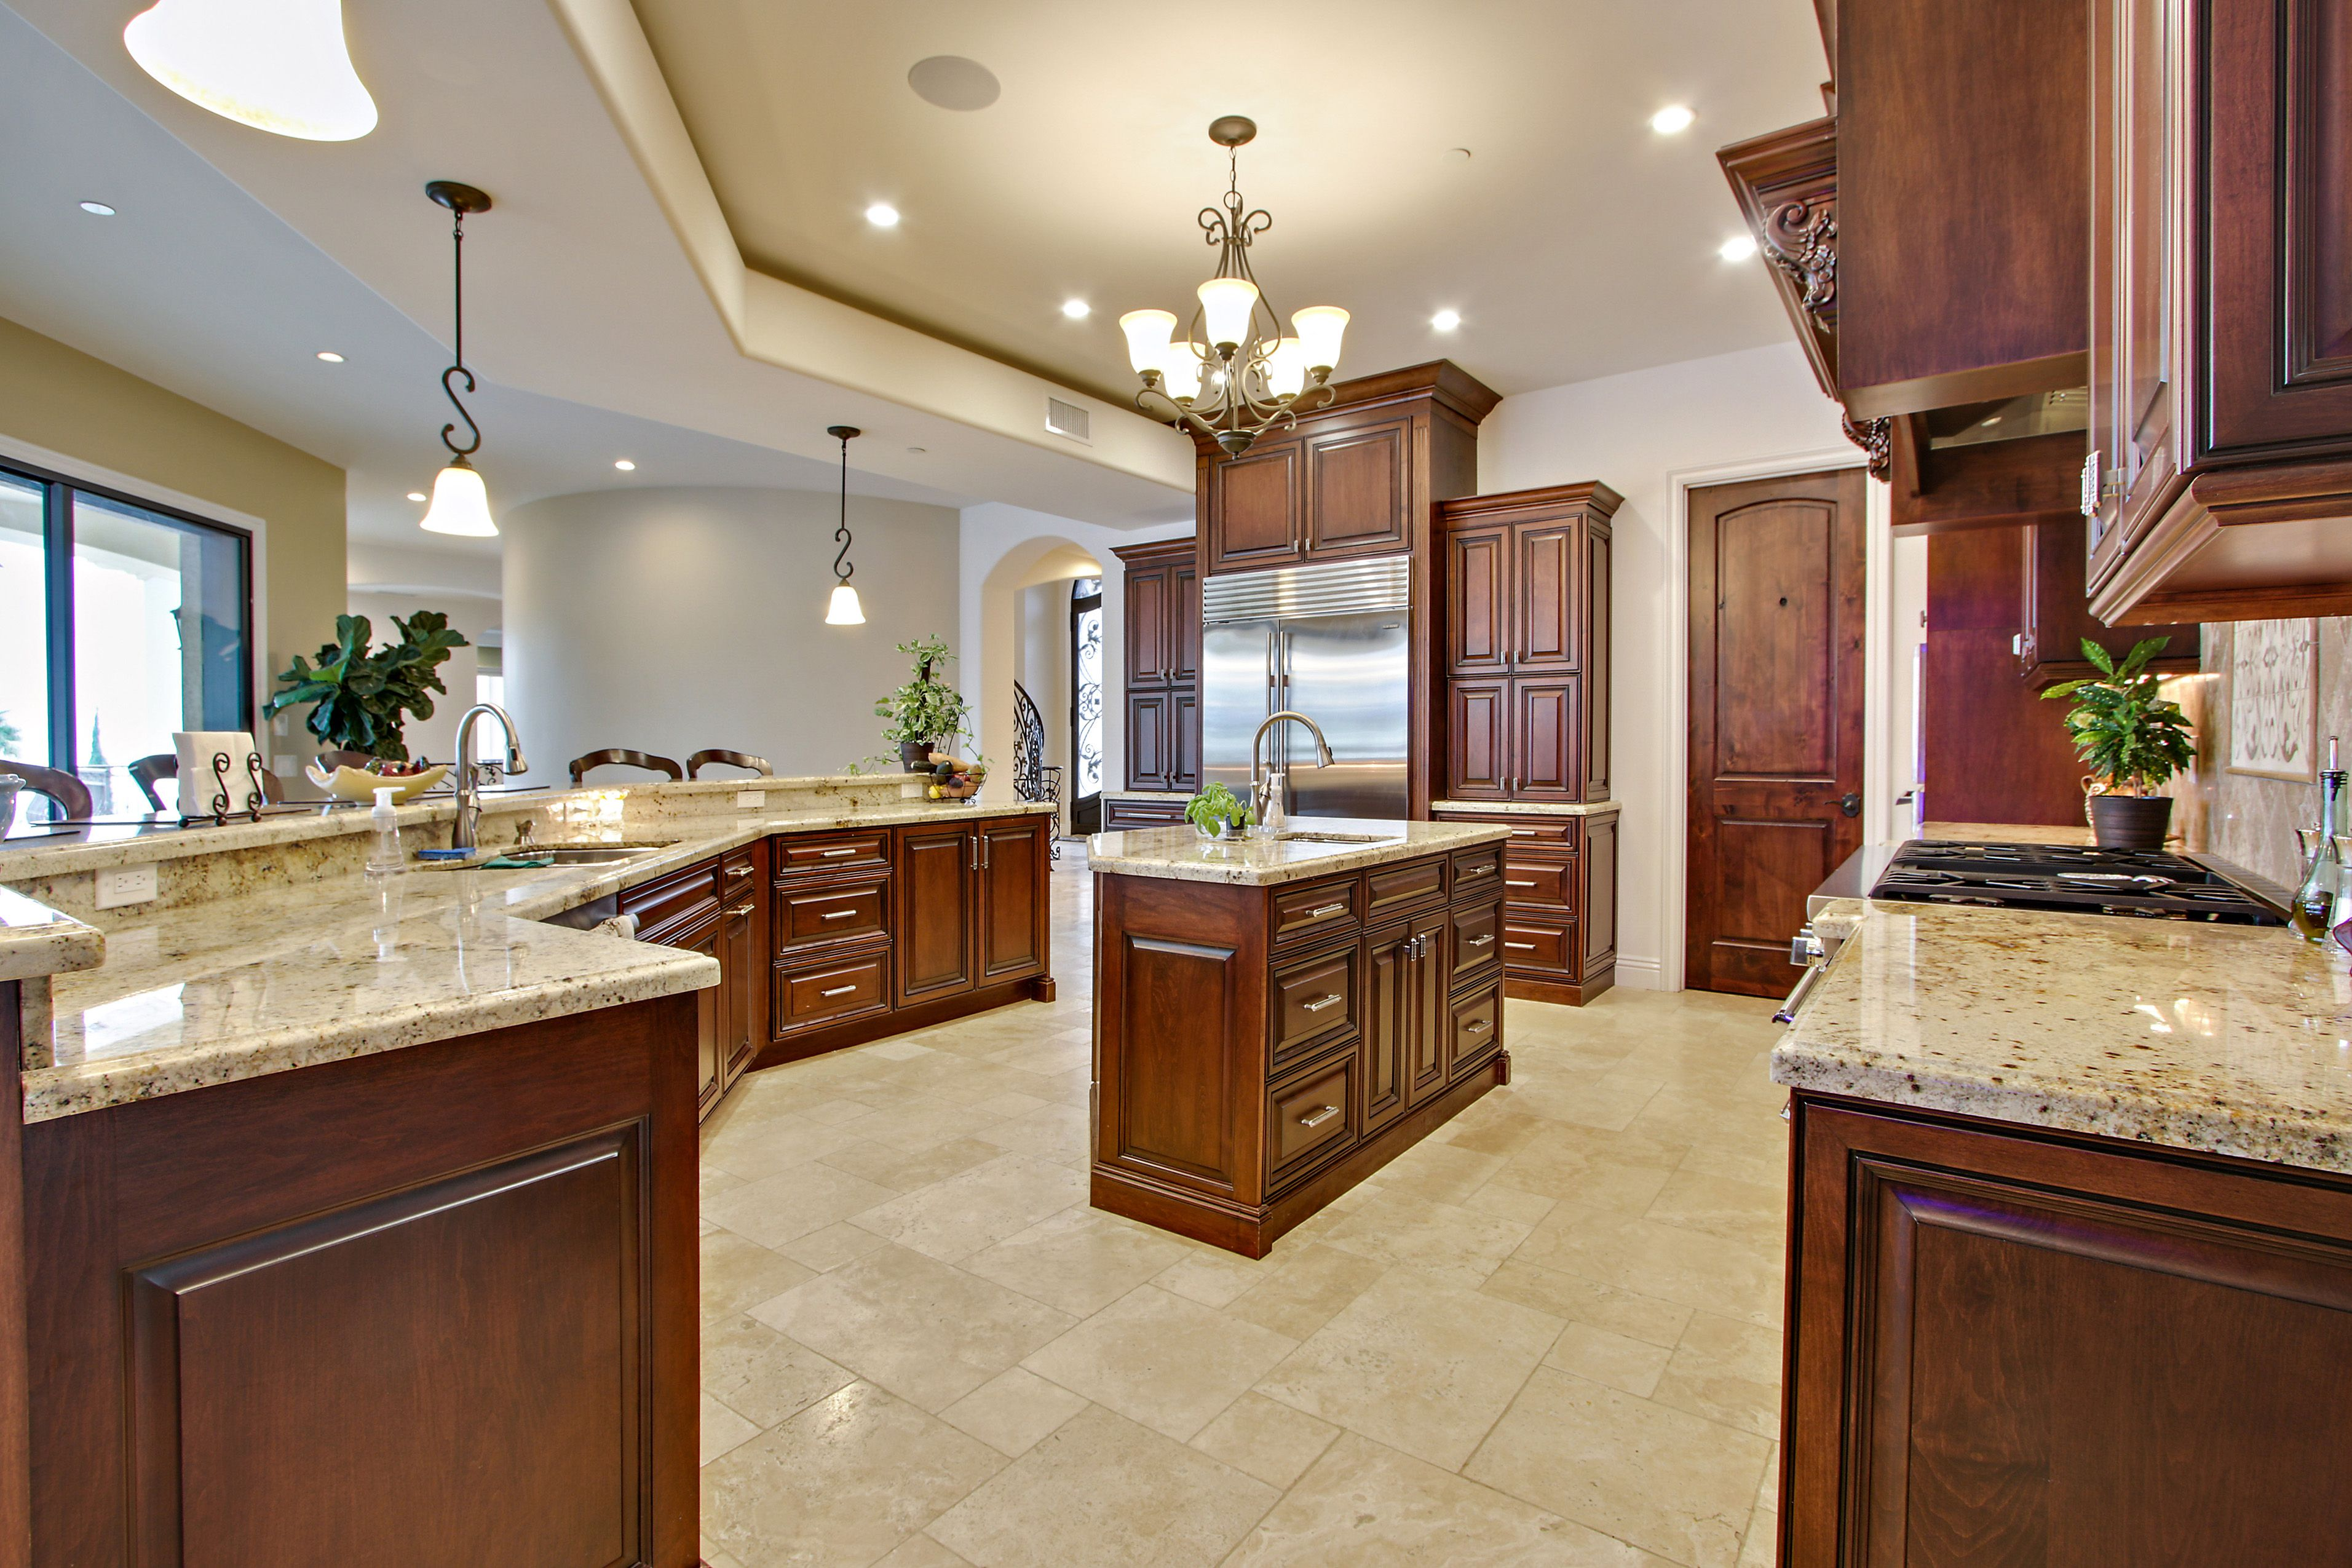 Expansive Kitchen Cabinets Built By Norm Tessier Cabinets Inc Rancho Cucamonga Ca Kitchen Kitchen Cabinets Home Decor